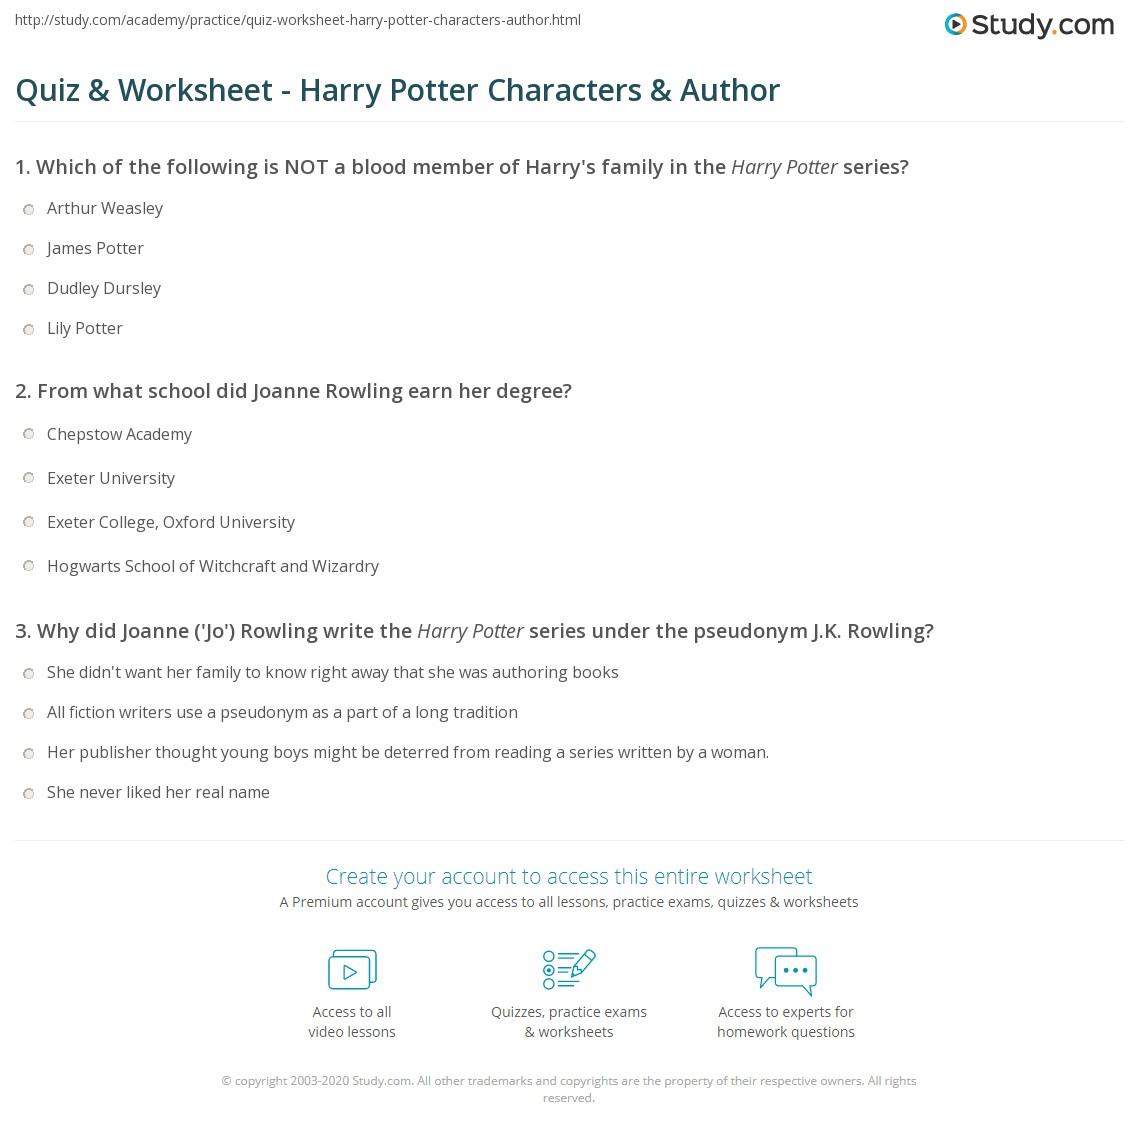 image regarding Harry Potter Quiz Printable named Quiz Worksheet - Harry Potter People Writer